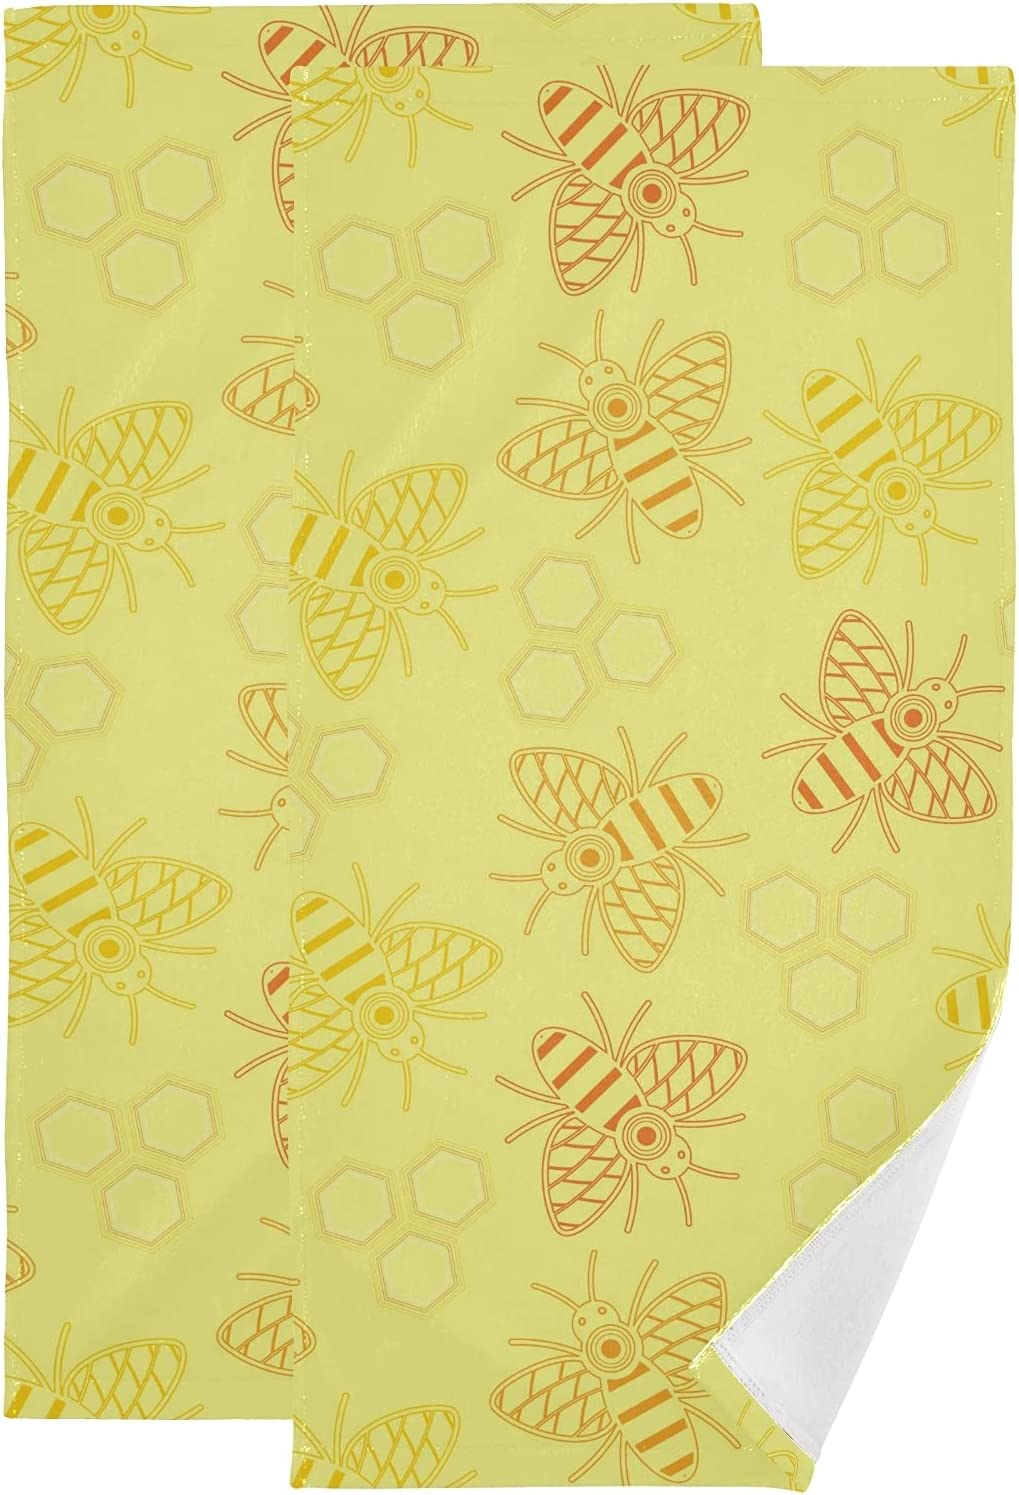 Yellow Oakland Mall Bee Classic Honeycomb Hive Face Towel 2 Hand of Kitchen Set